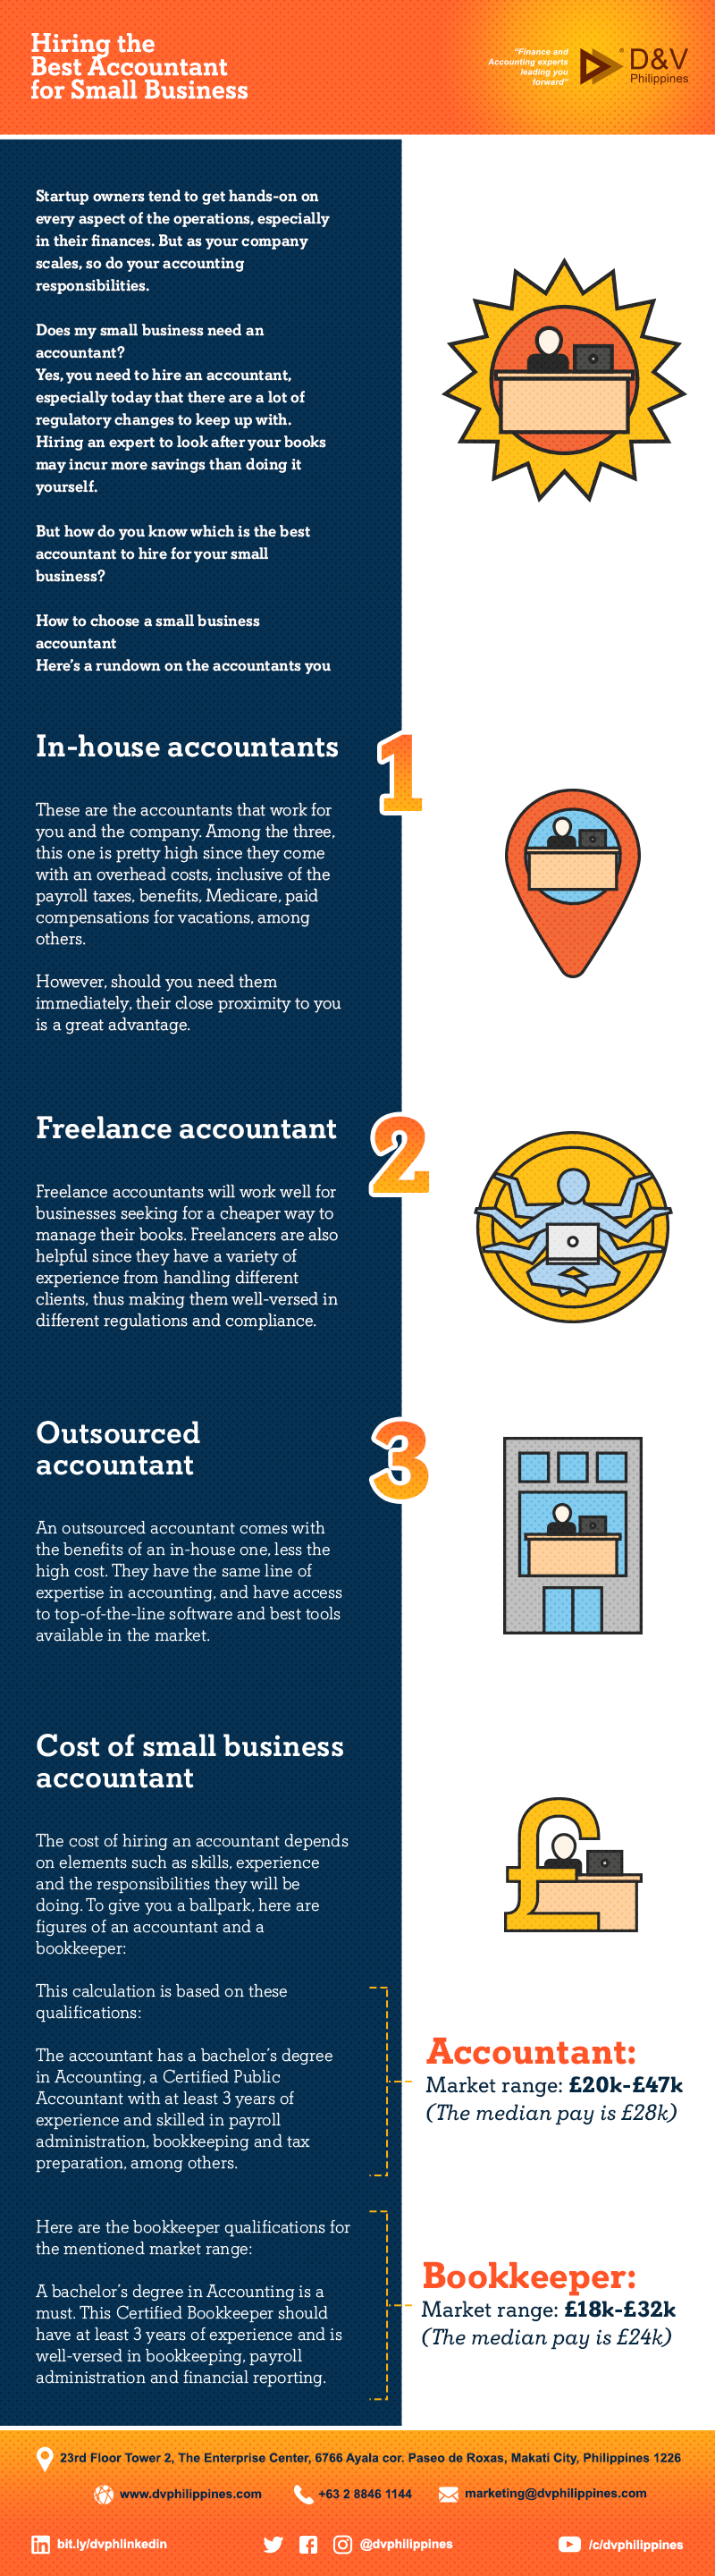 Infograpihcs_Hiring-the-Best-Accountant-for-Small-Business_Main-1